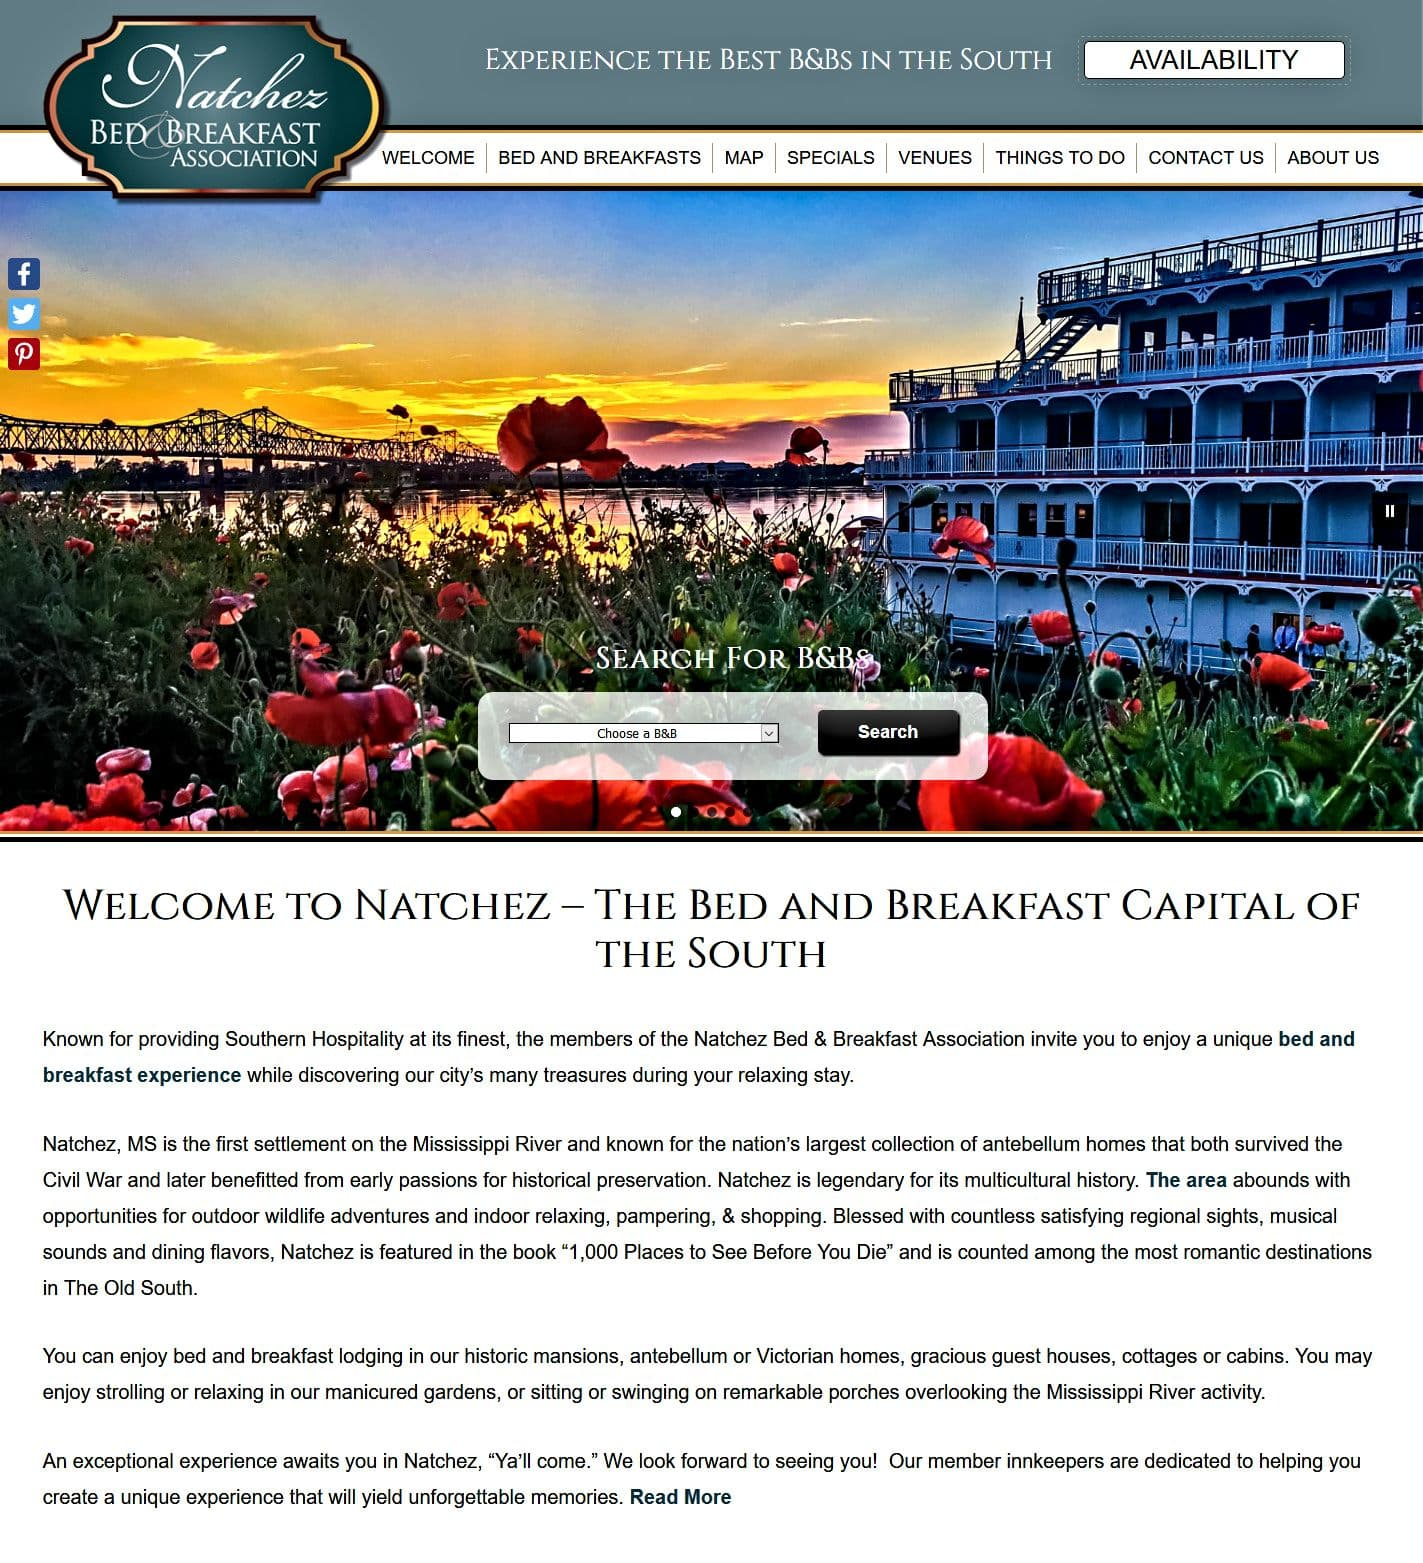 Home page screenshot of Natchez Bed and Breakfast Associaiton's website